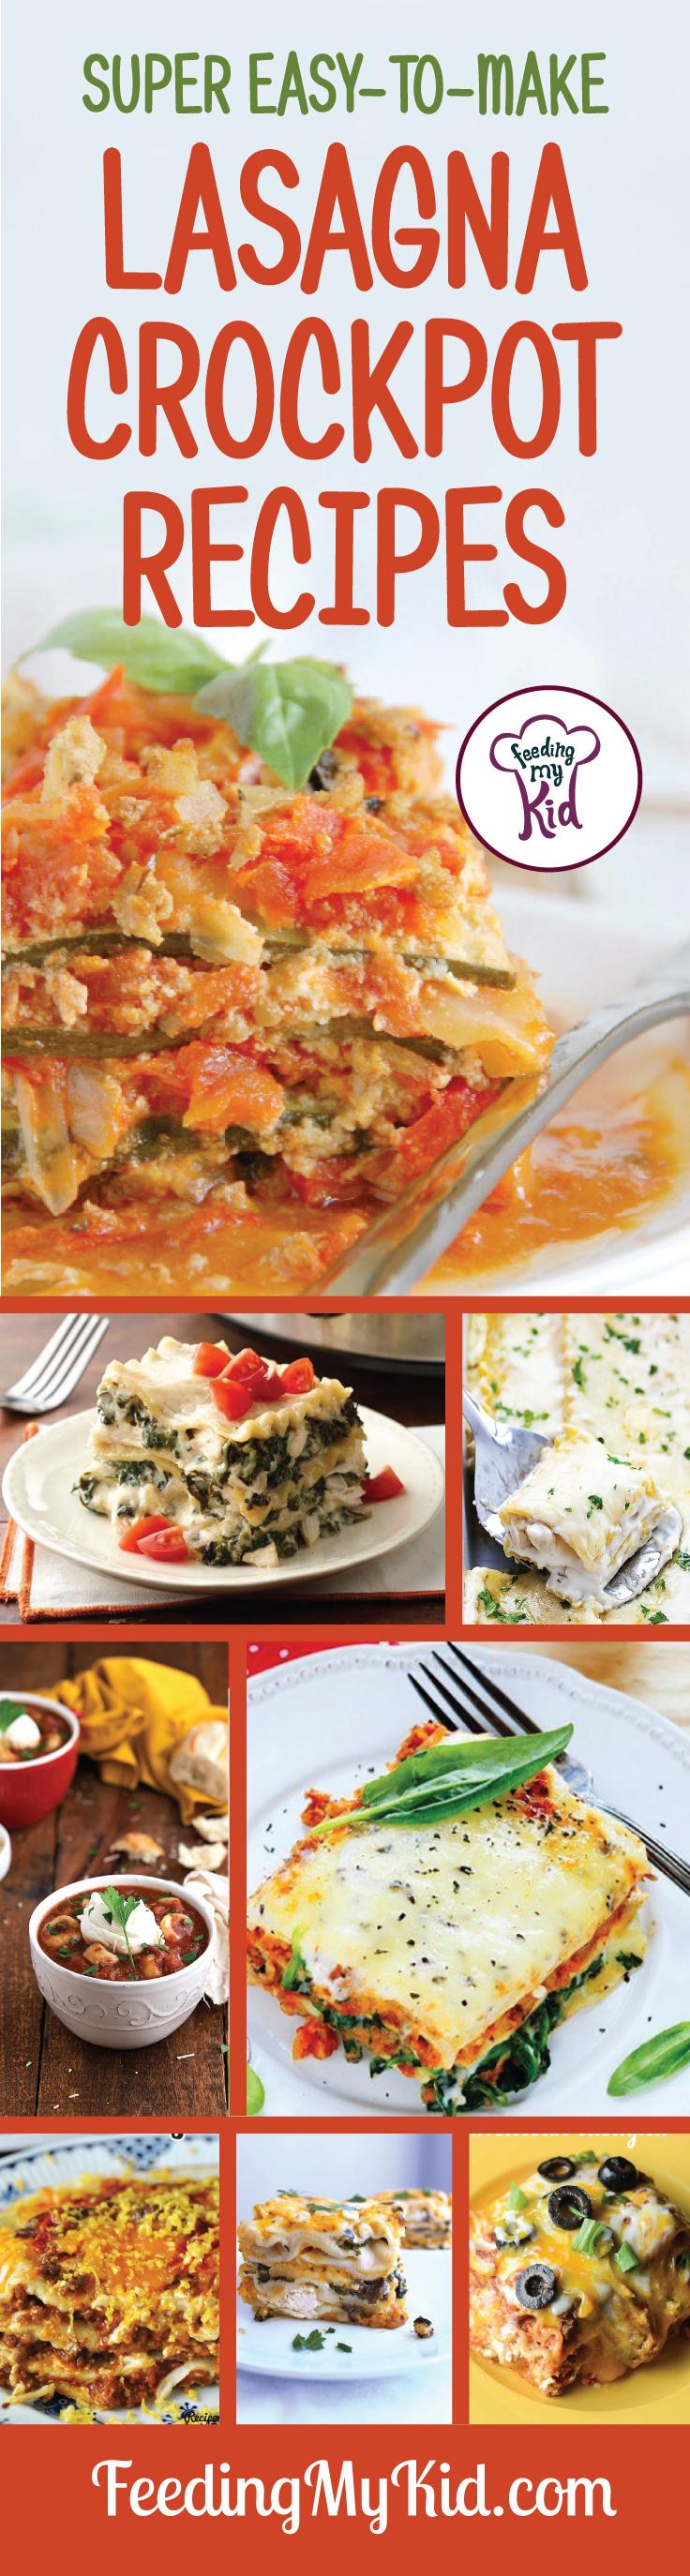 We put together this list of easy-to-make lasagna crockpot ideas just for you! These recipes are sure to please every lasagna lover out there! And the great thing is, these take very little time to prep! Take a look! Feeding My Kid is a filled with all the information you need about how to raise your kids, from healthy tips to nutritious recipes. #FeedingMyKid #lasagnaideas #recipes #crockpot